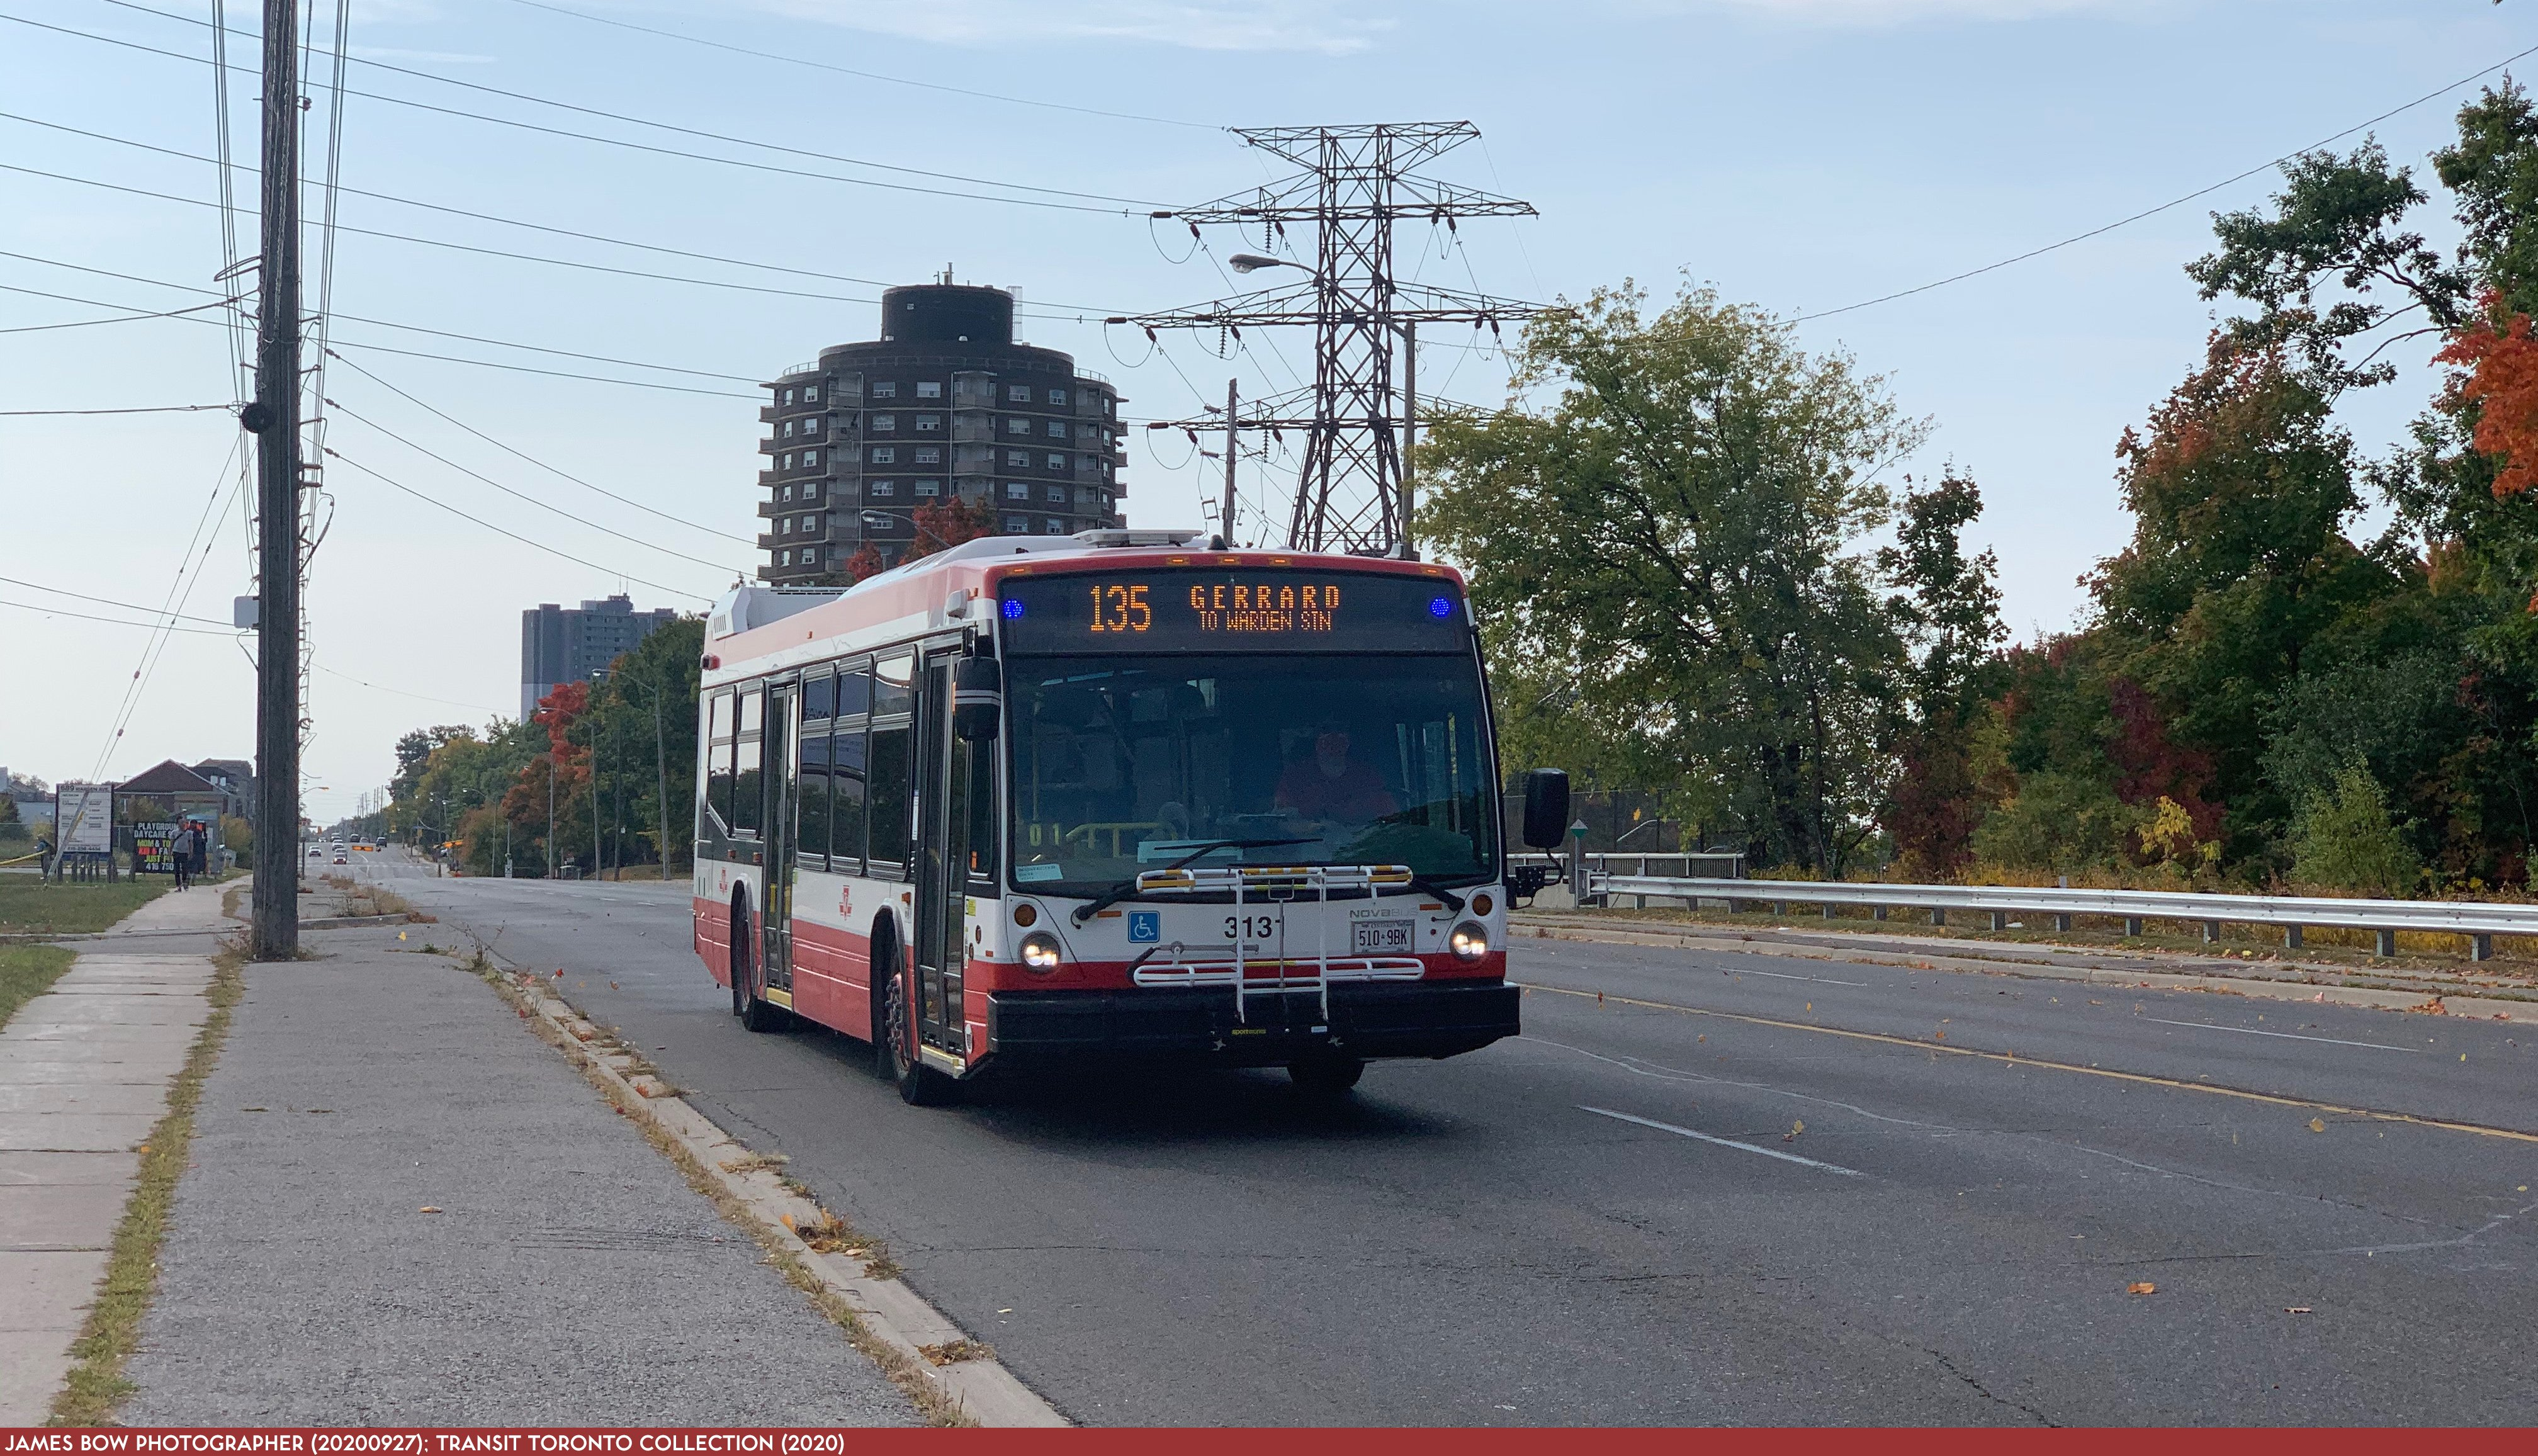 20200927 - 135 Gerrard - 3131 NB on Warden at St. Clair